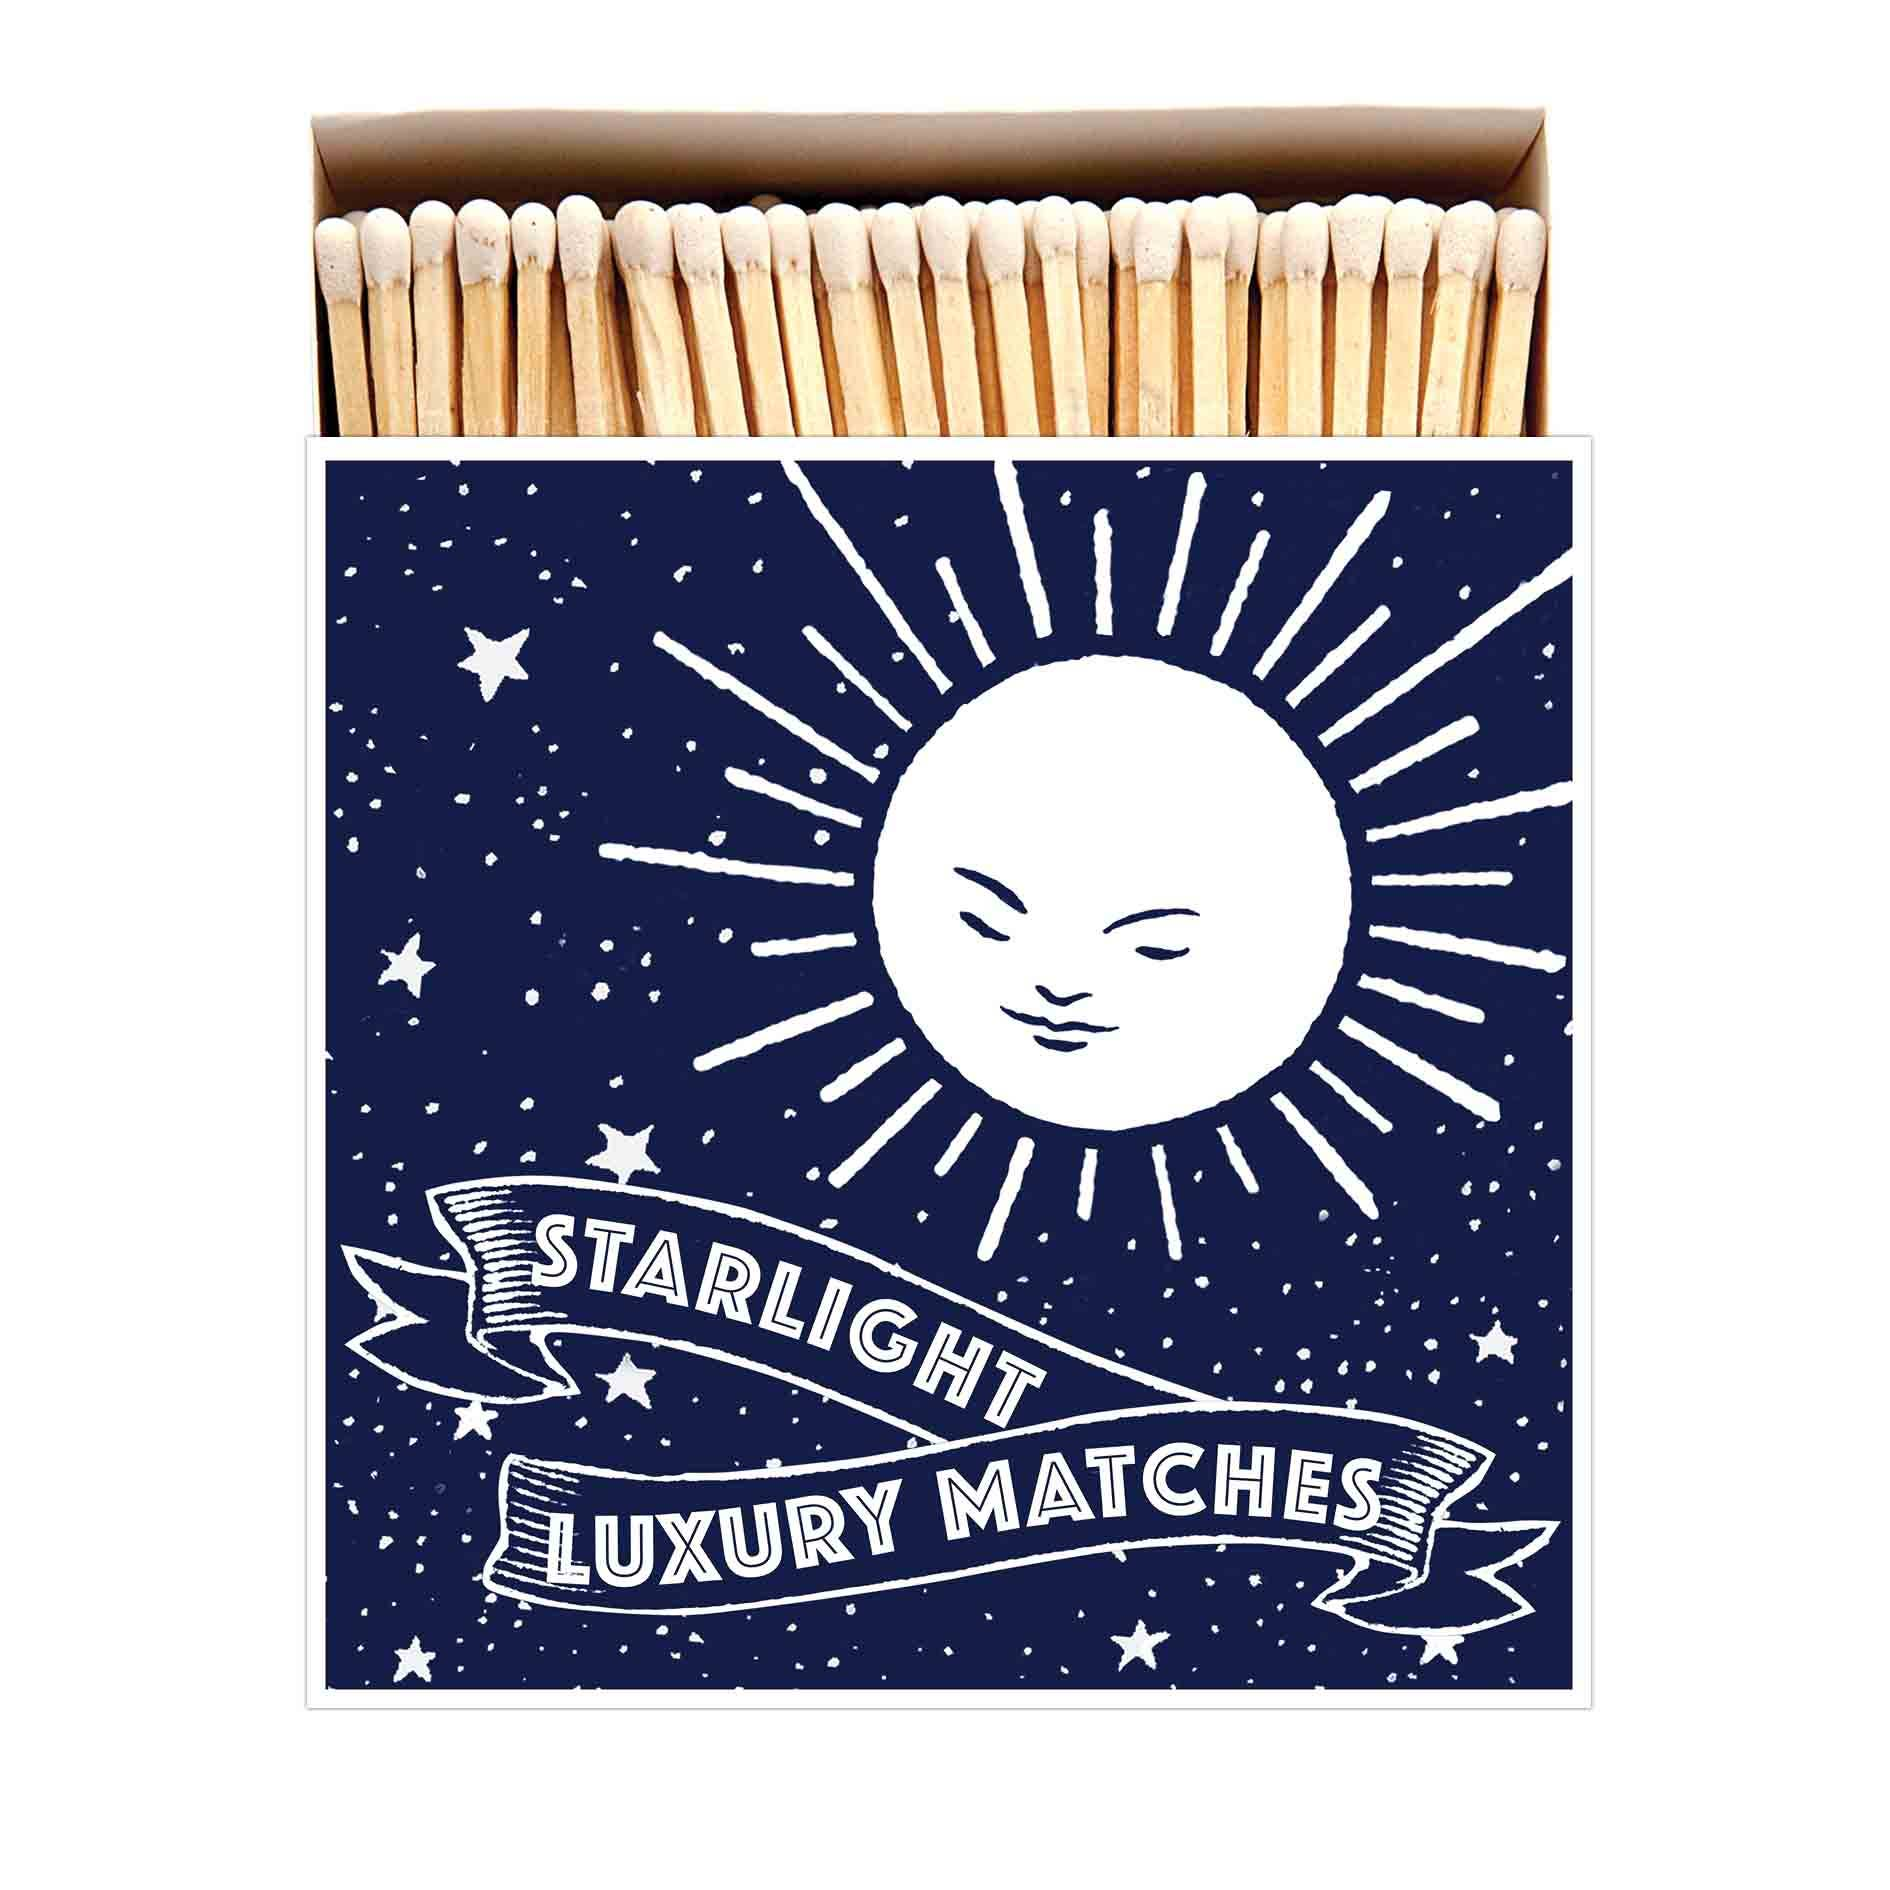 Starlight Matchbox